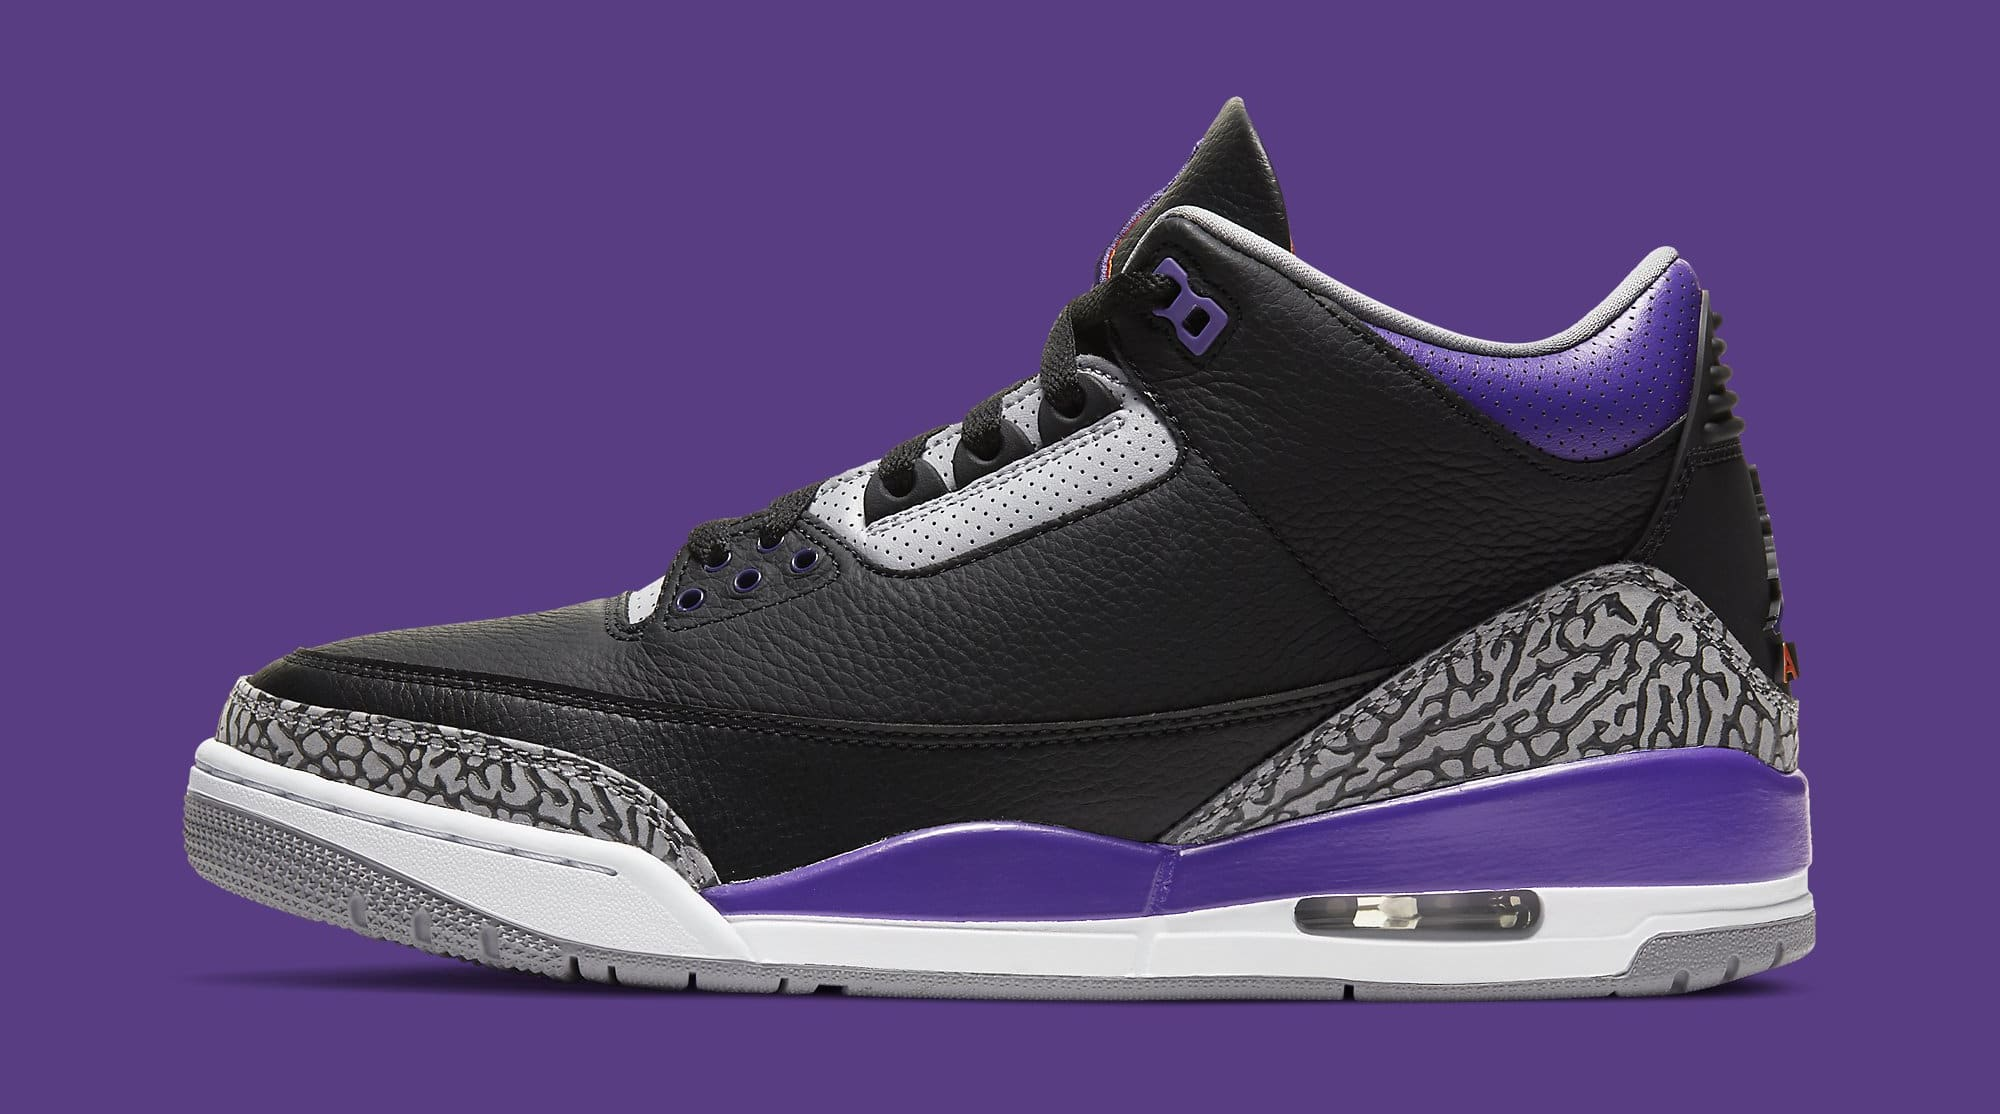 Air Jordan 3 Retro 'Court Purple' CT8532-050 Lateral